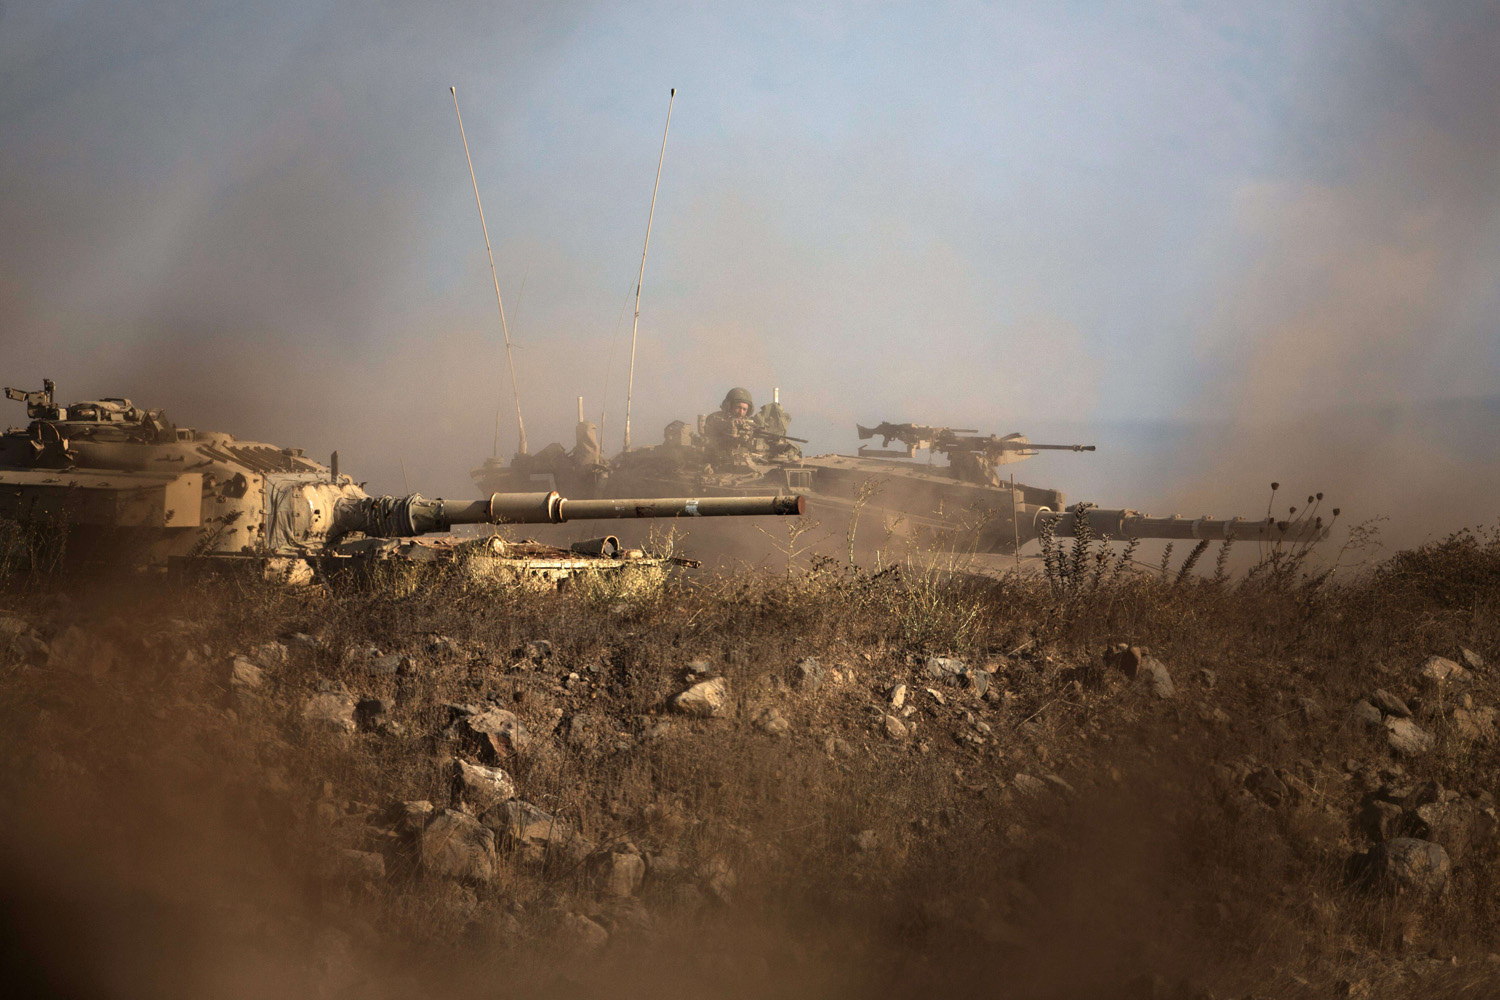 Sept. 1, 2014. An Israeli soldier sits in his Merkava tank (R) on alert position on the Israeli-annexed Golan Heights near the Quneitra crossing with Syria. Heavy fighting between Syrian government troops and opposition forces overflowed into the buffer zone separating Syrian and Israeli-occupied territory over the weekend.